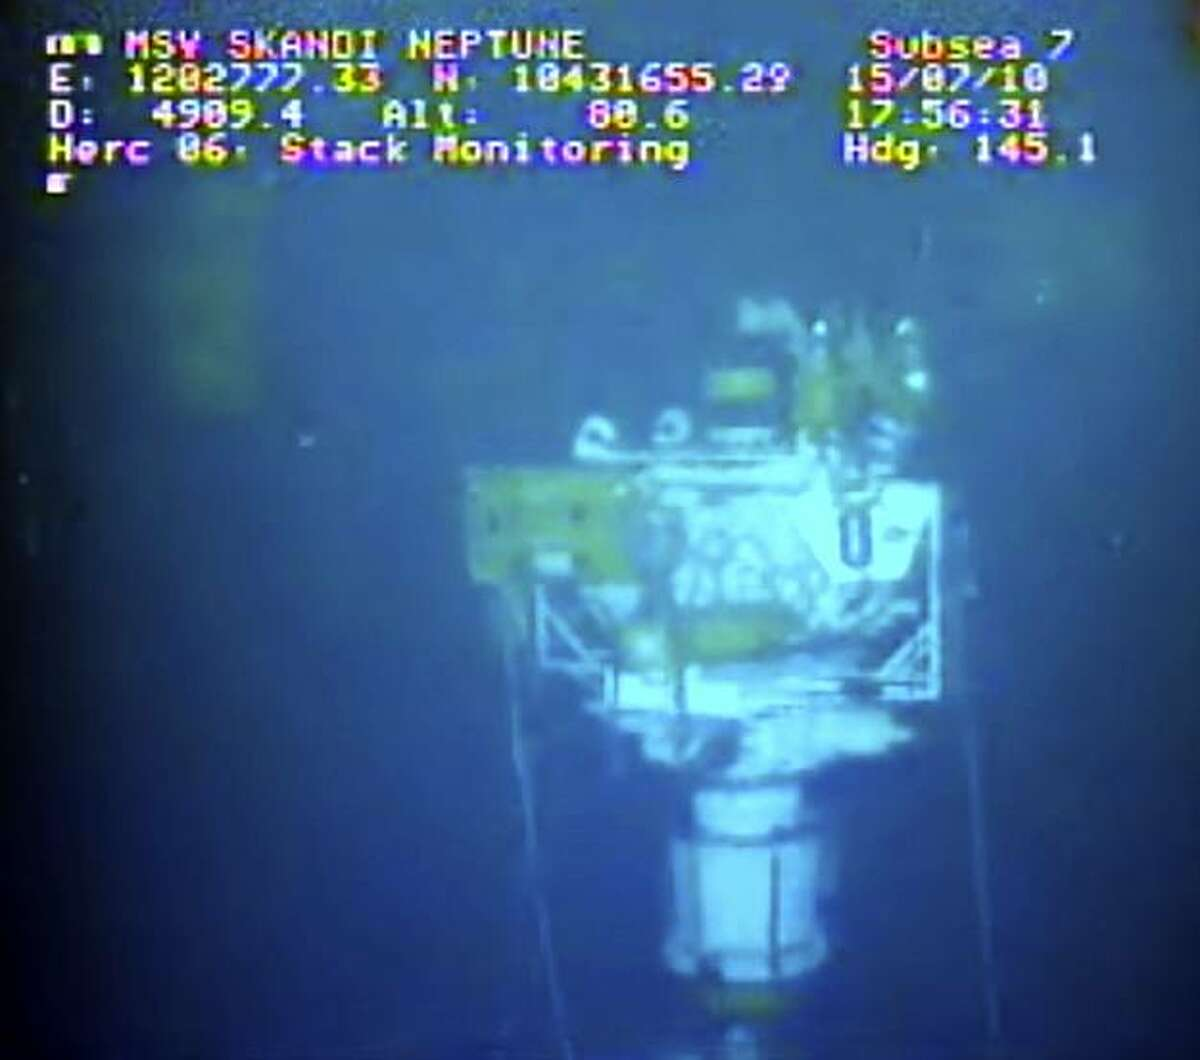 This image taken from video provided by BP PLC at 17:56 CDT shows that oil has stopped flowing from the new 75-ton cap atop the site of the Deepwater Horizon oil spill in the Gulf of Mexico Thursday, July 15, 2010. BP finally choked off the flow of oil into the Gulf of Mexico on Thursday _ 85 days and up to 184 million gallons after the crisis unfolded _ then began a tense 48 hours of watching to see whether the capped-off well would hold or blow a new leak. Engineers will monitor pressure gauges and watch for signs of leaks elsewhere in the well. (AP Photo/BP PLC) NO SALES